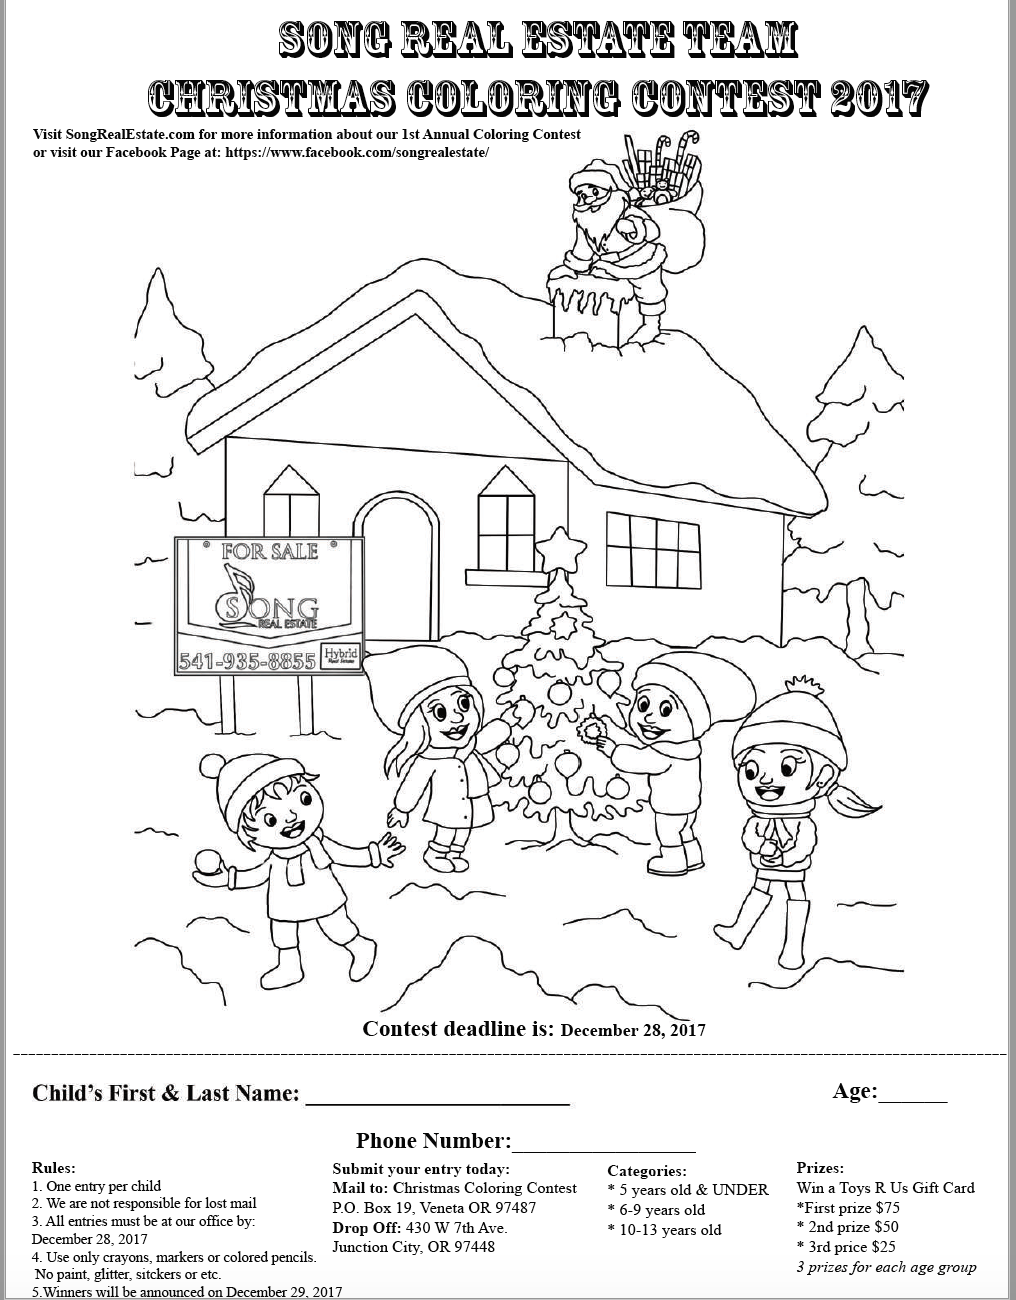 Christmas Coloring Contest With 1st Annual 2017 Song Real Estate Team Eugene